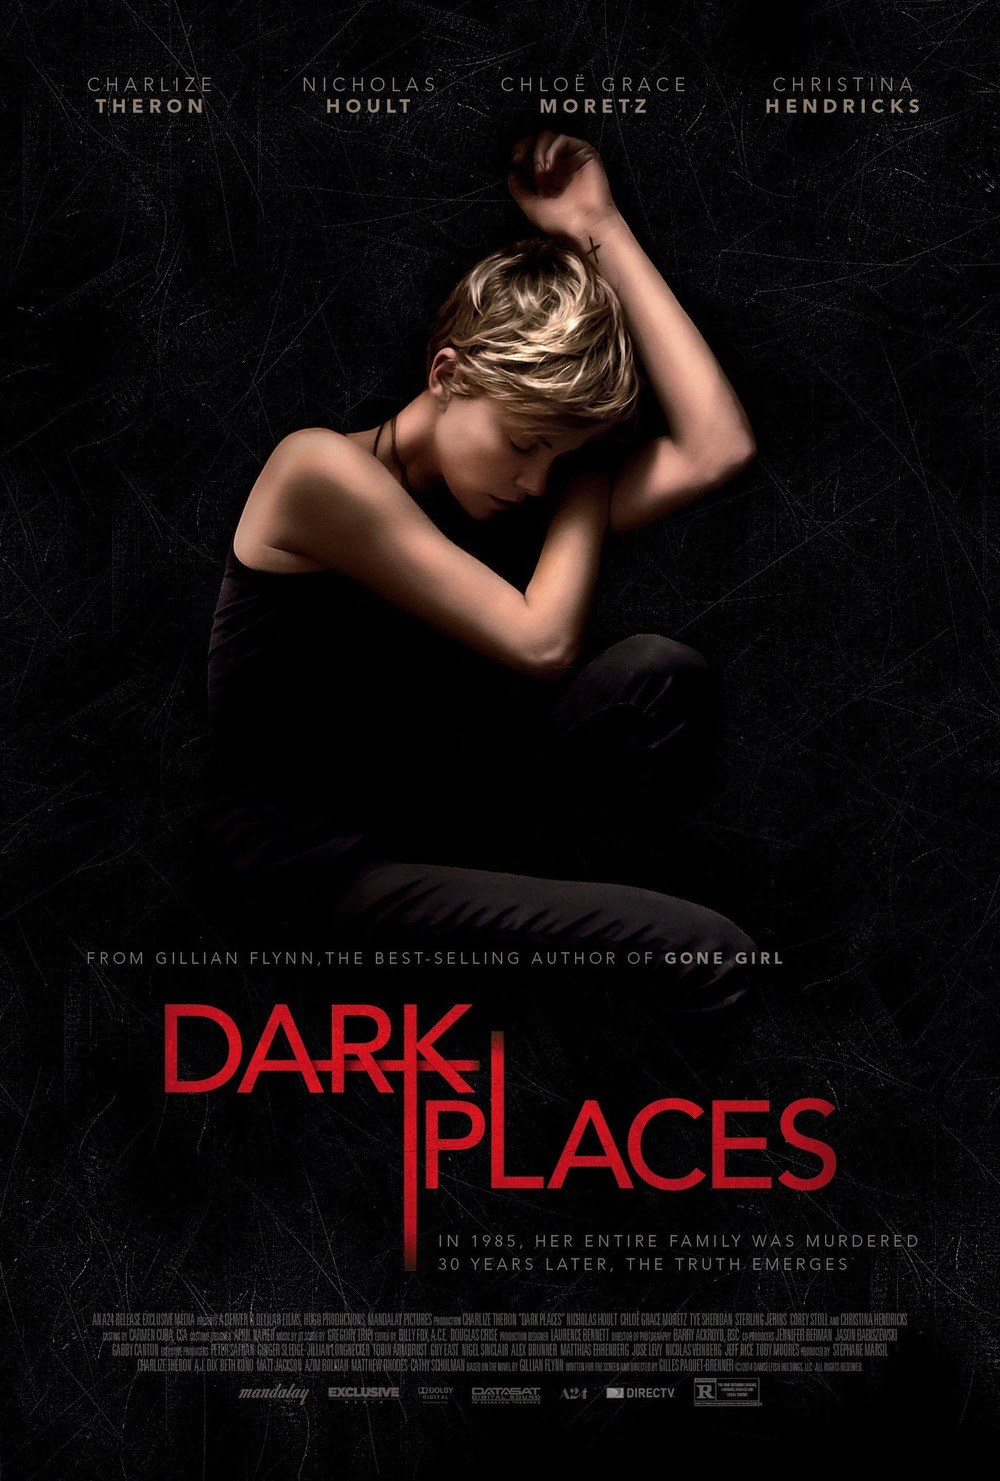 DARK PLACES (2015) Dir. Gilles Paquet-Brenner